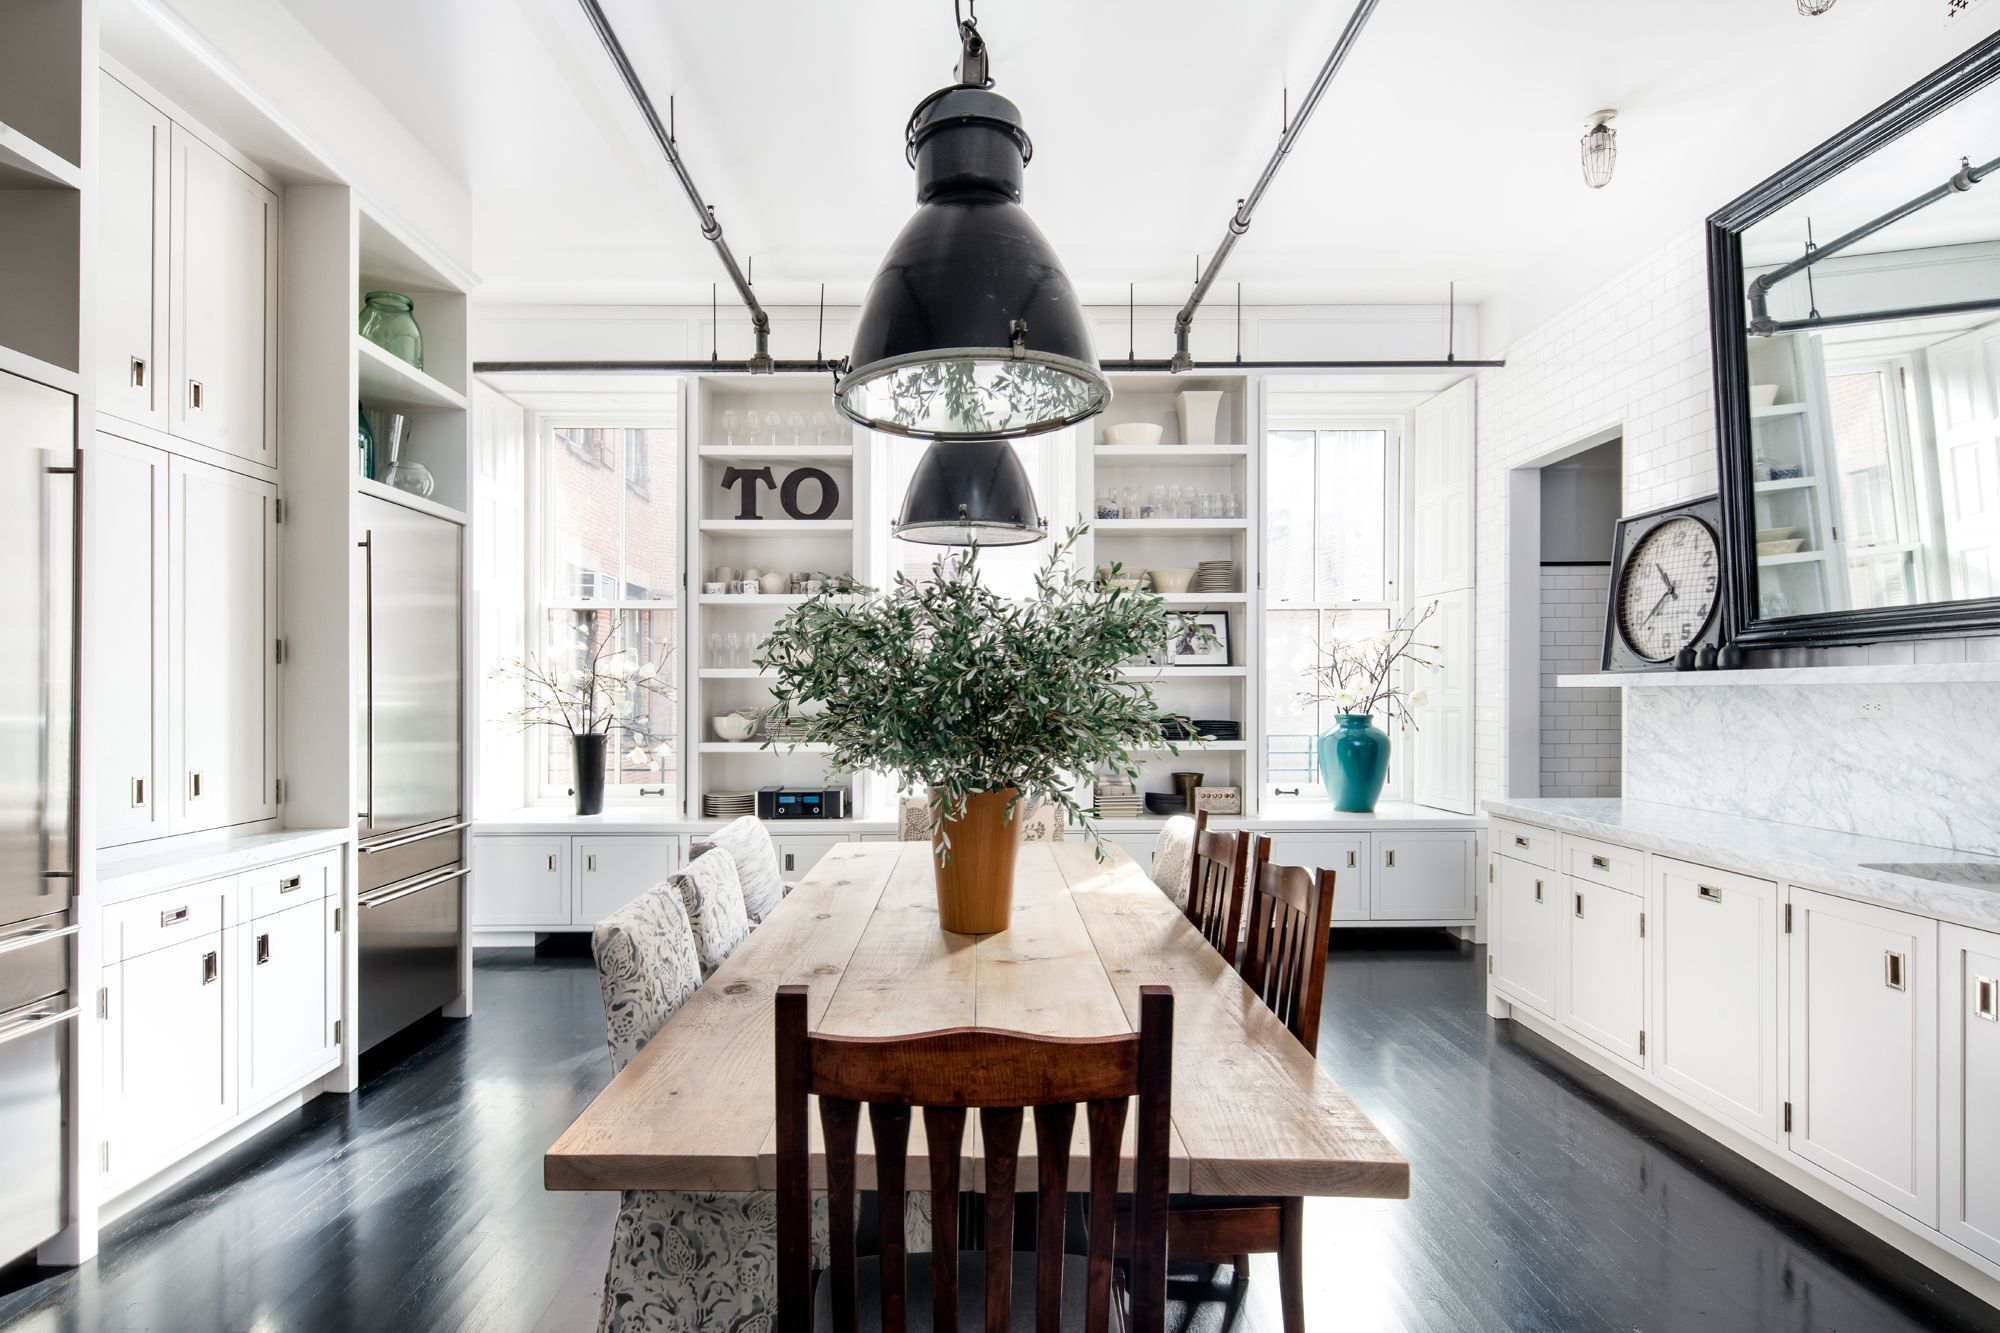 Meg Ryan Lists Her Stunning Soho Loft For $109M